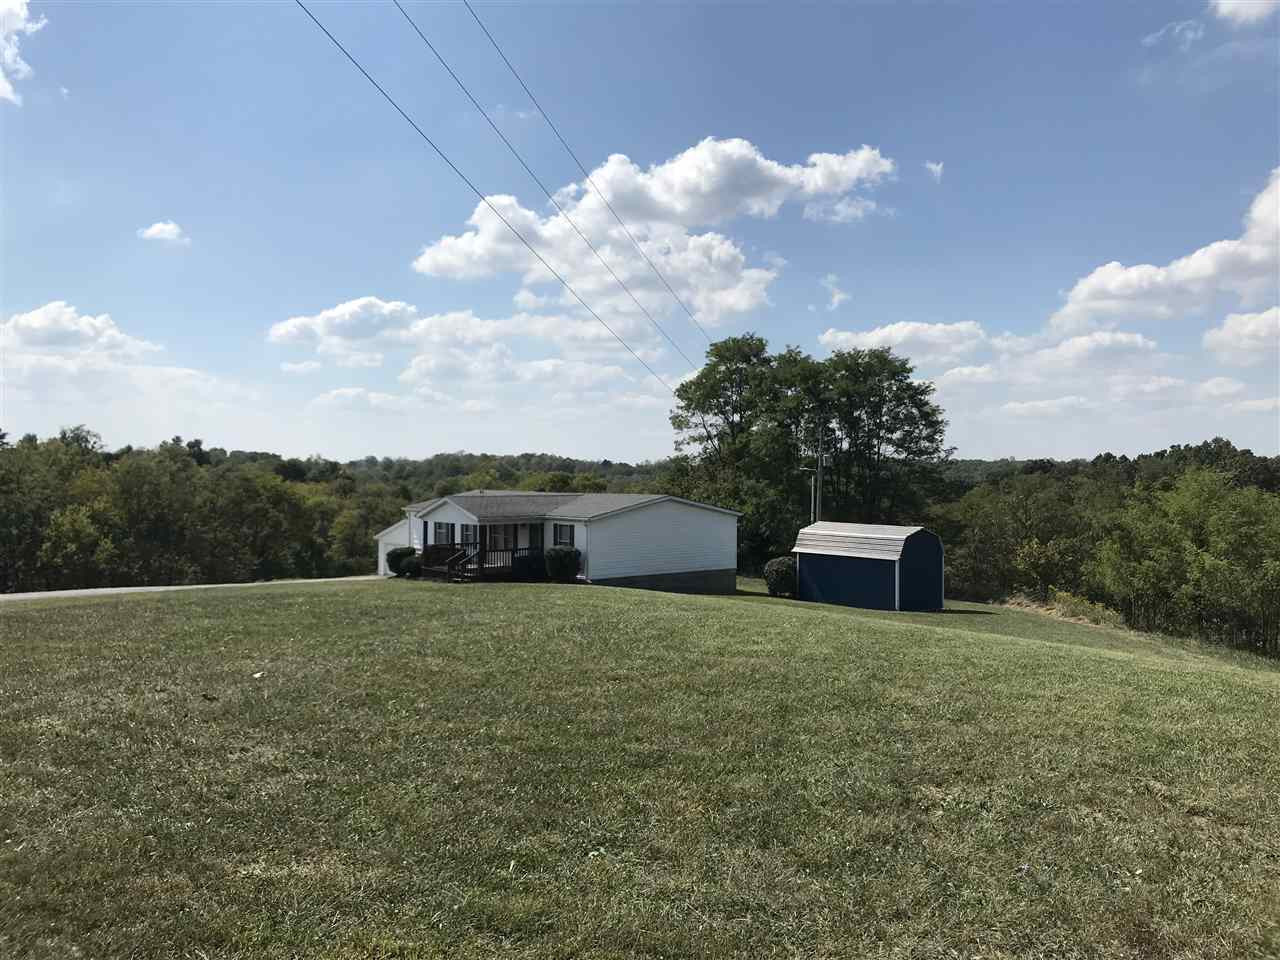 Photo 3 for 14266 KY Highway 356 Sadieville, KY 40370